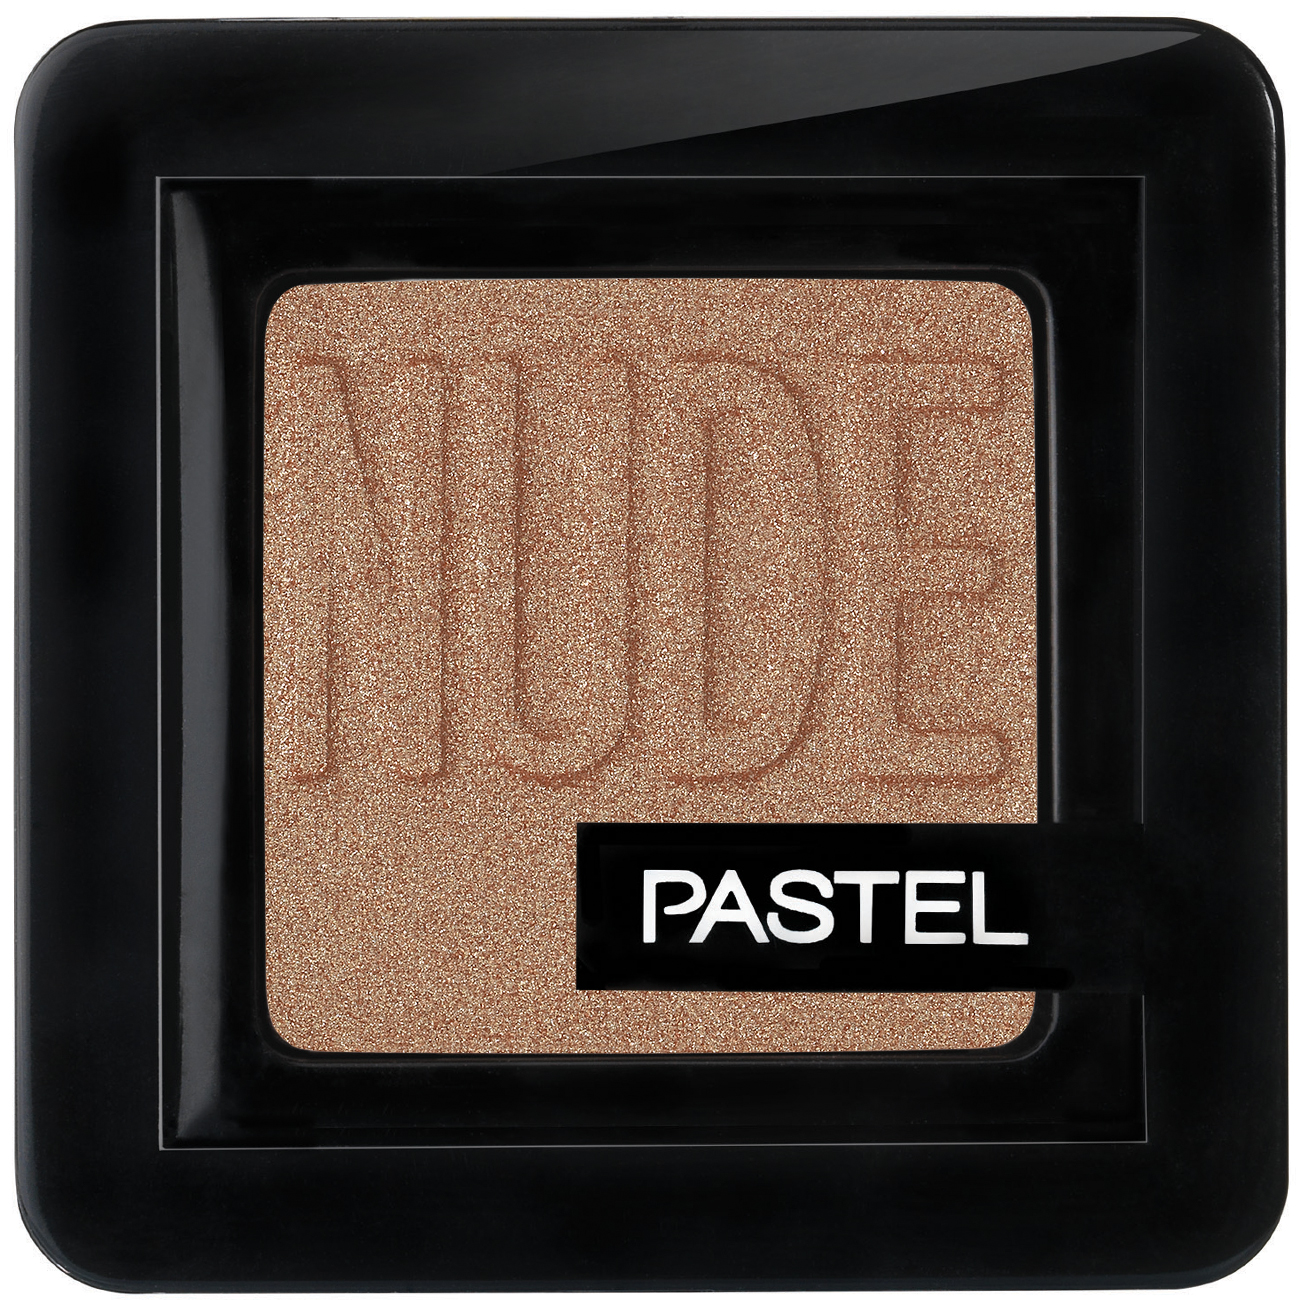 Pastel Nude Single Eyeshadow - Tekli Far 79 Dazzling